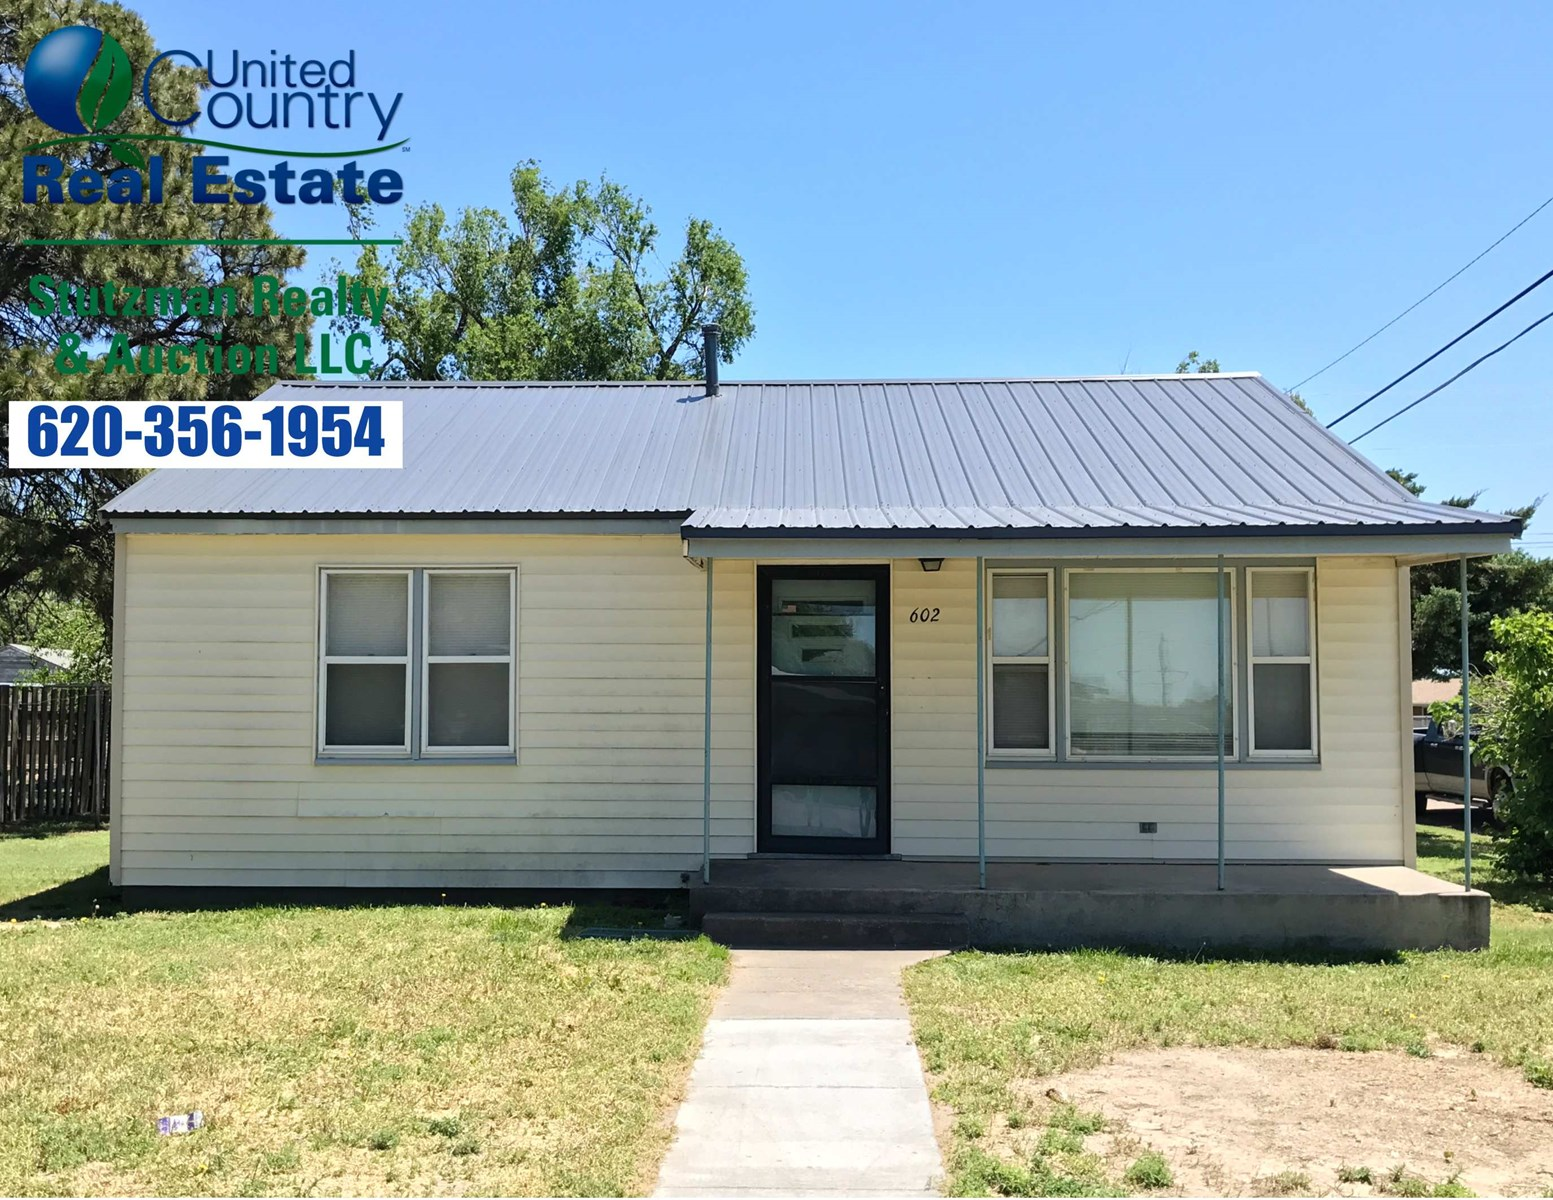 AFFORDABLE HOME FOR SALE CLOSE TO SCHOOLS IN ULYSSES, KS